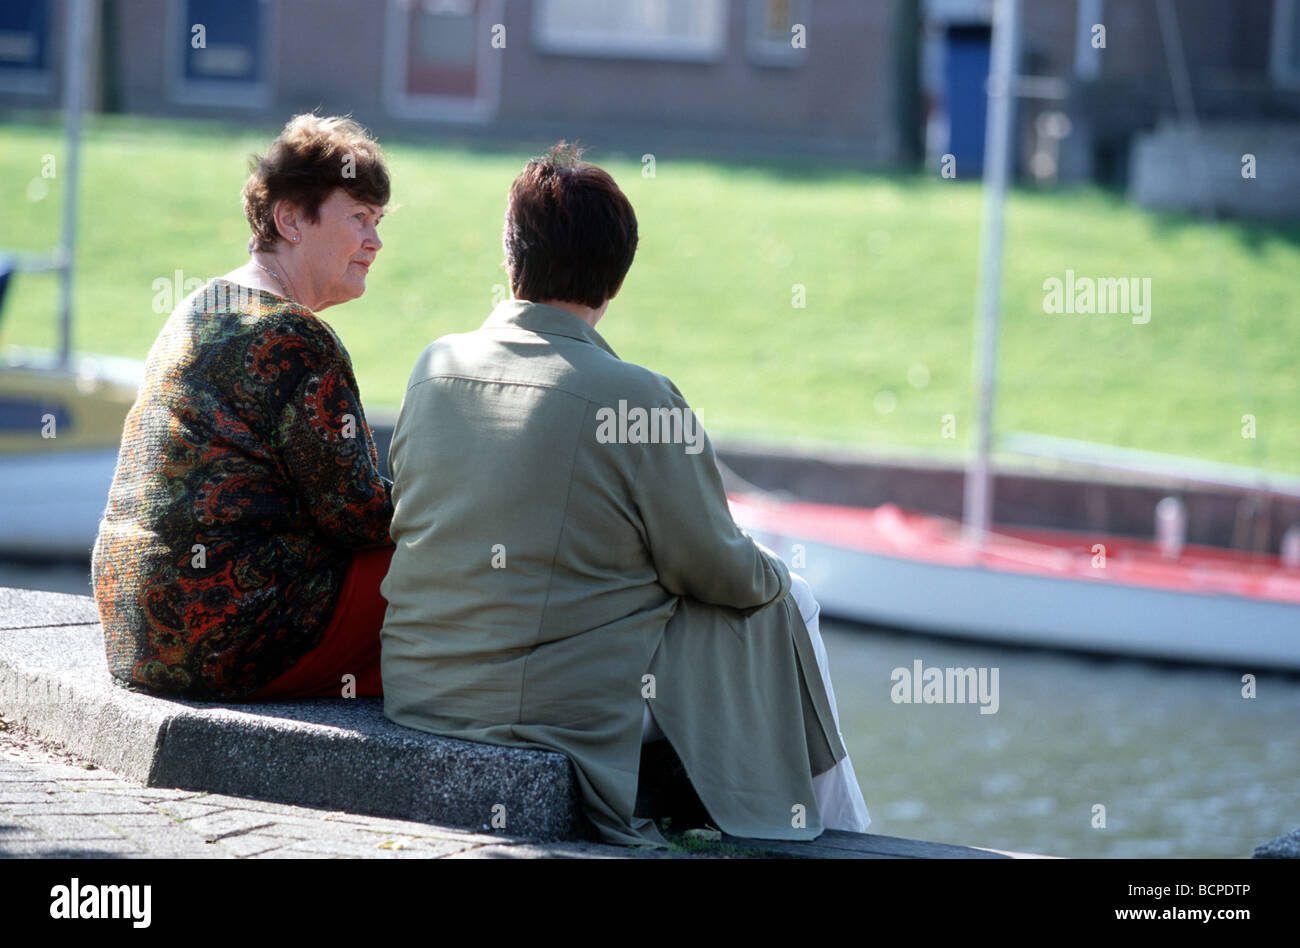 Two women telling the truth or spreading lies or secrets, rear view - Stock Image